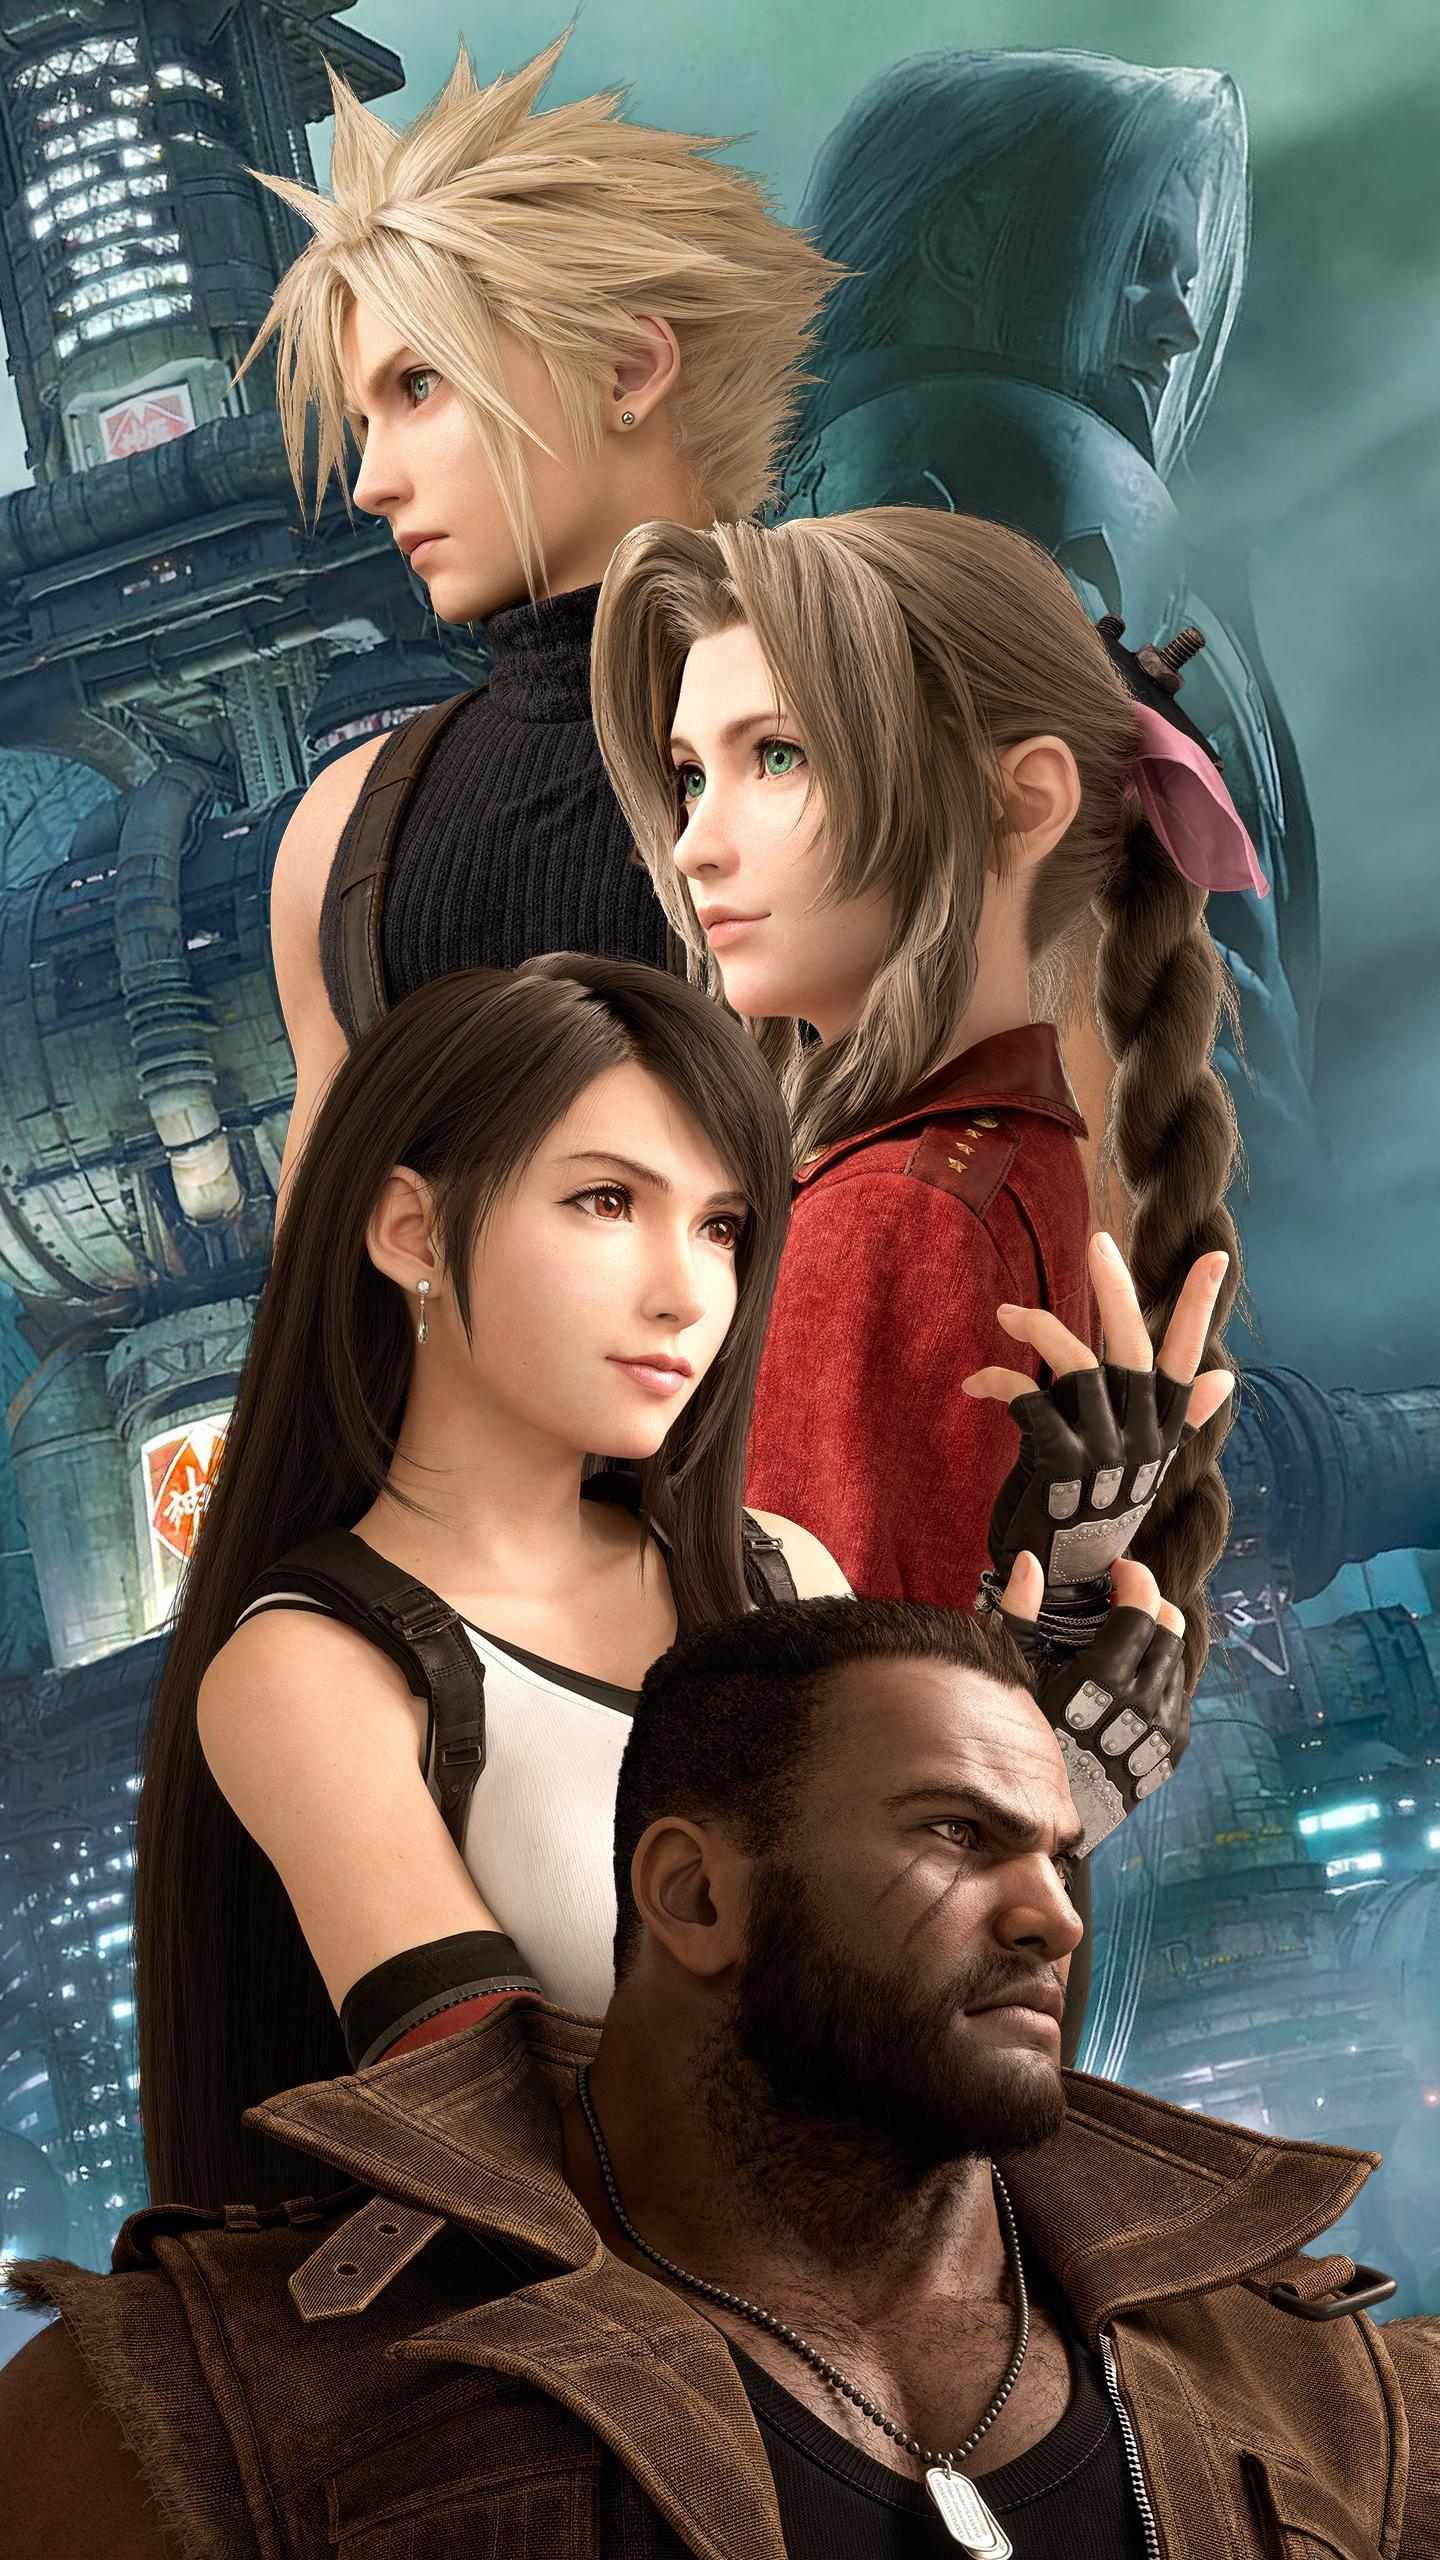 Final Fantasy Vii Remake Phone Wallpapers Wallpaper Cave